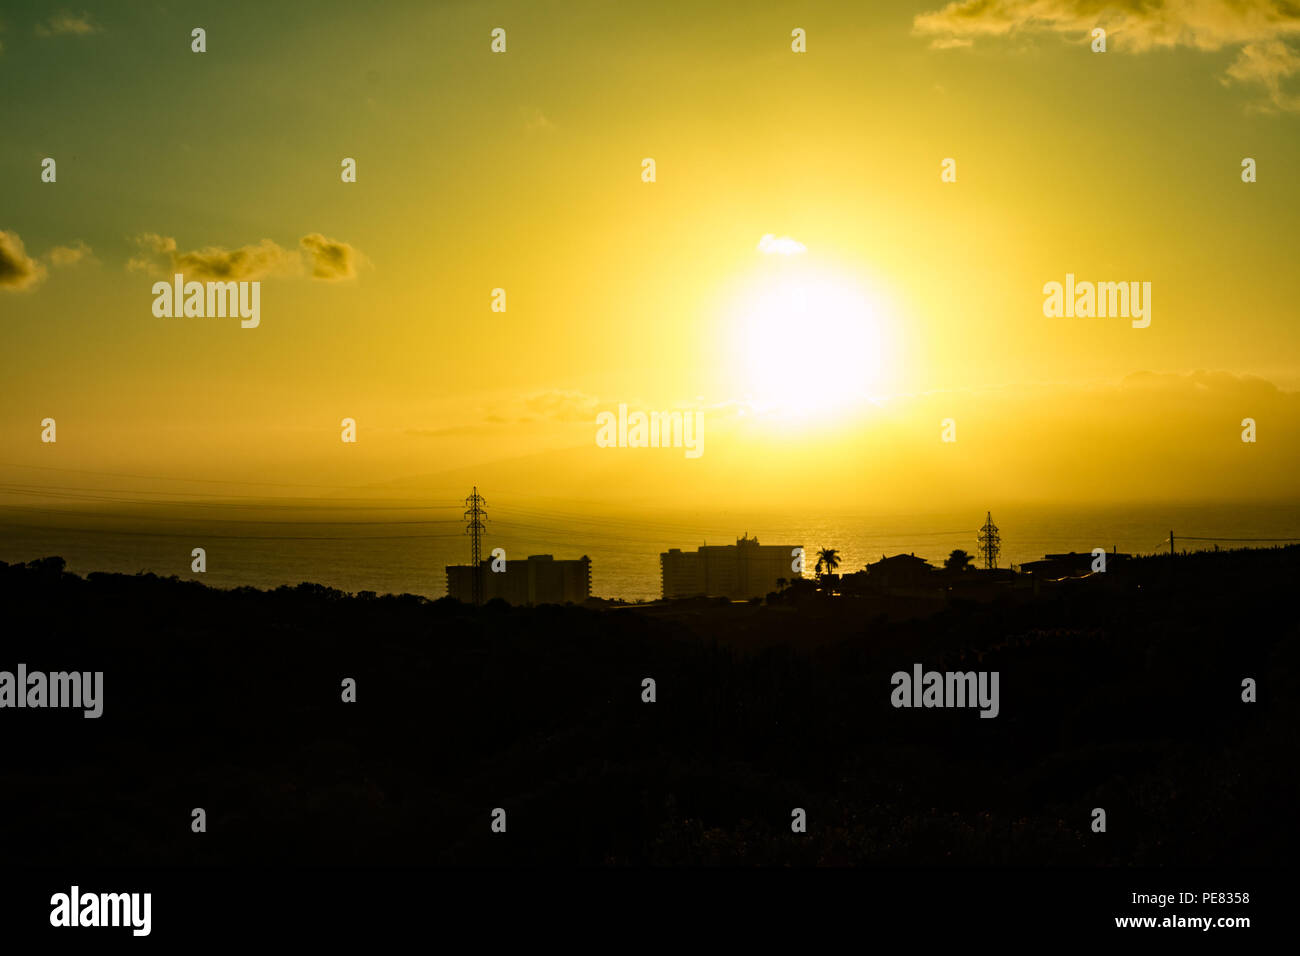 Sunset view to the Playa Paraiso buildings silouettes and ocean - Stock Image